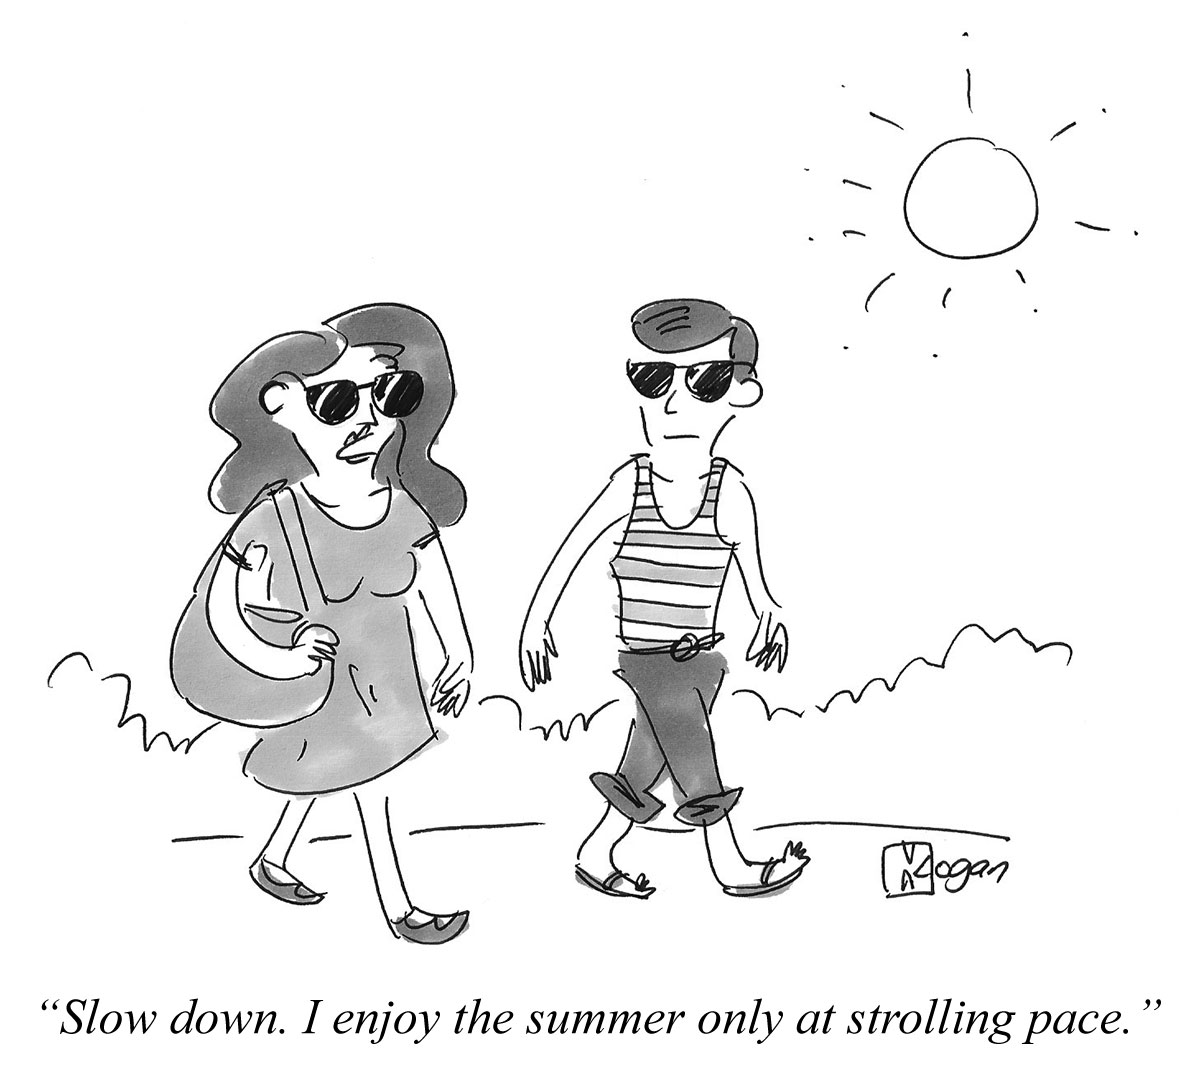 Slow down. I enjoy the summer only at strolling pace.